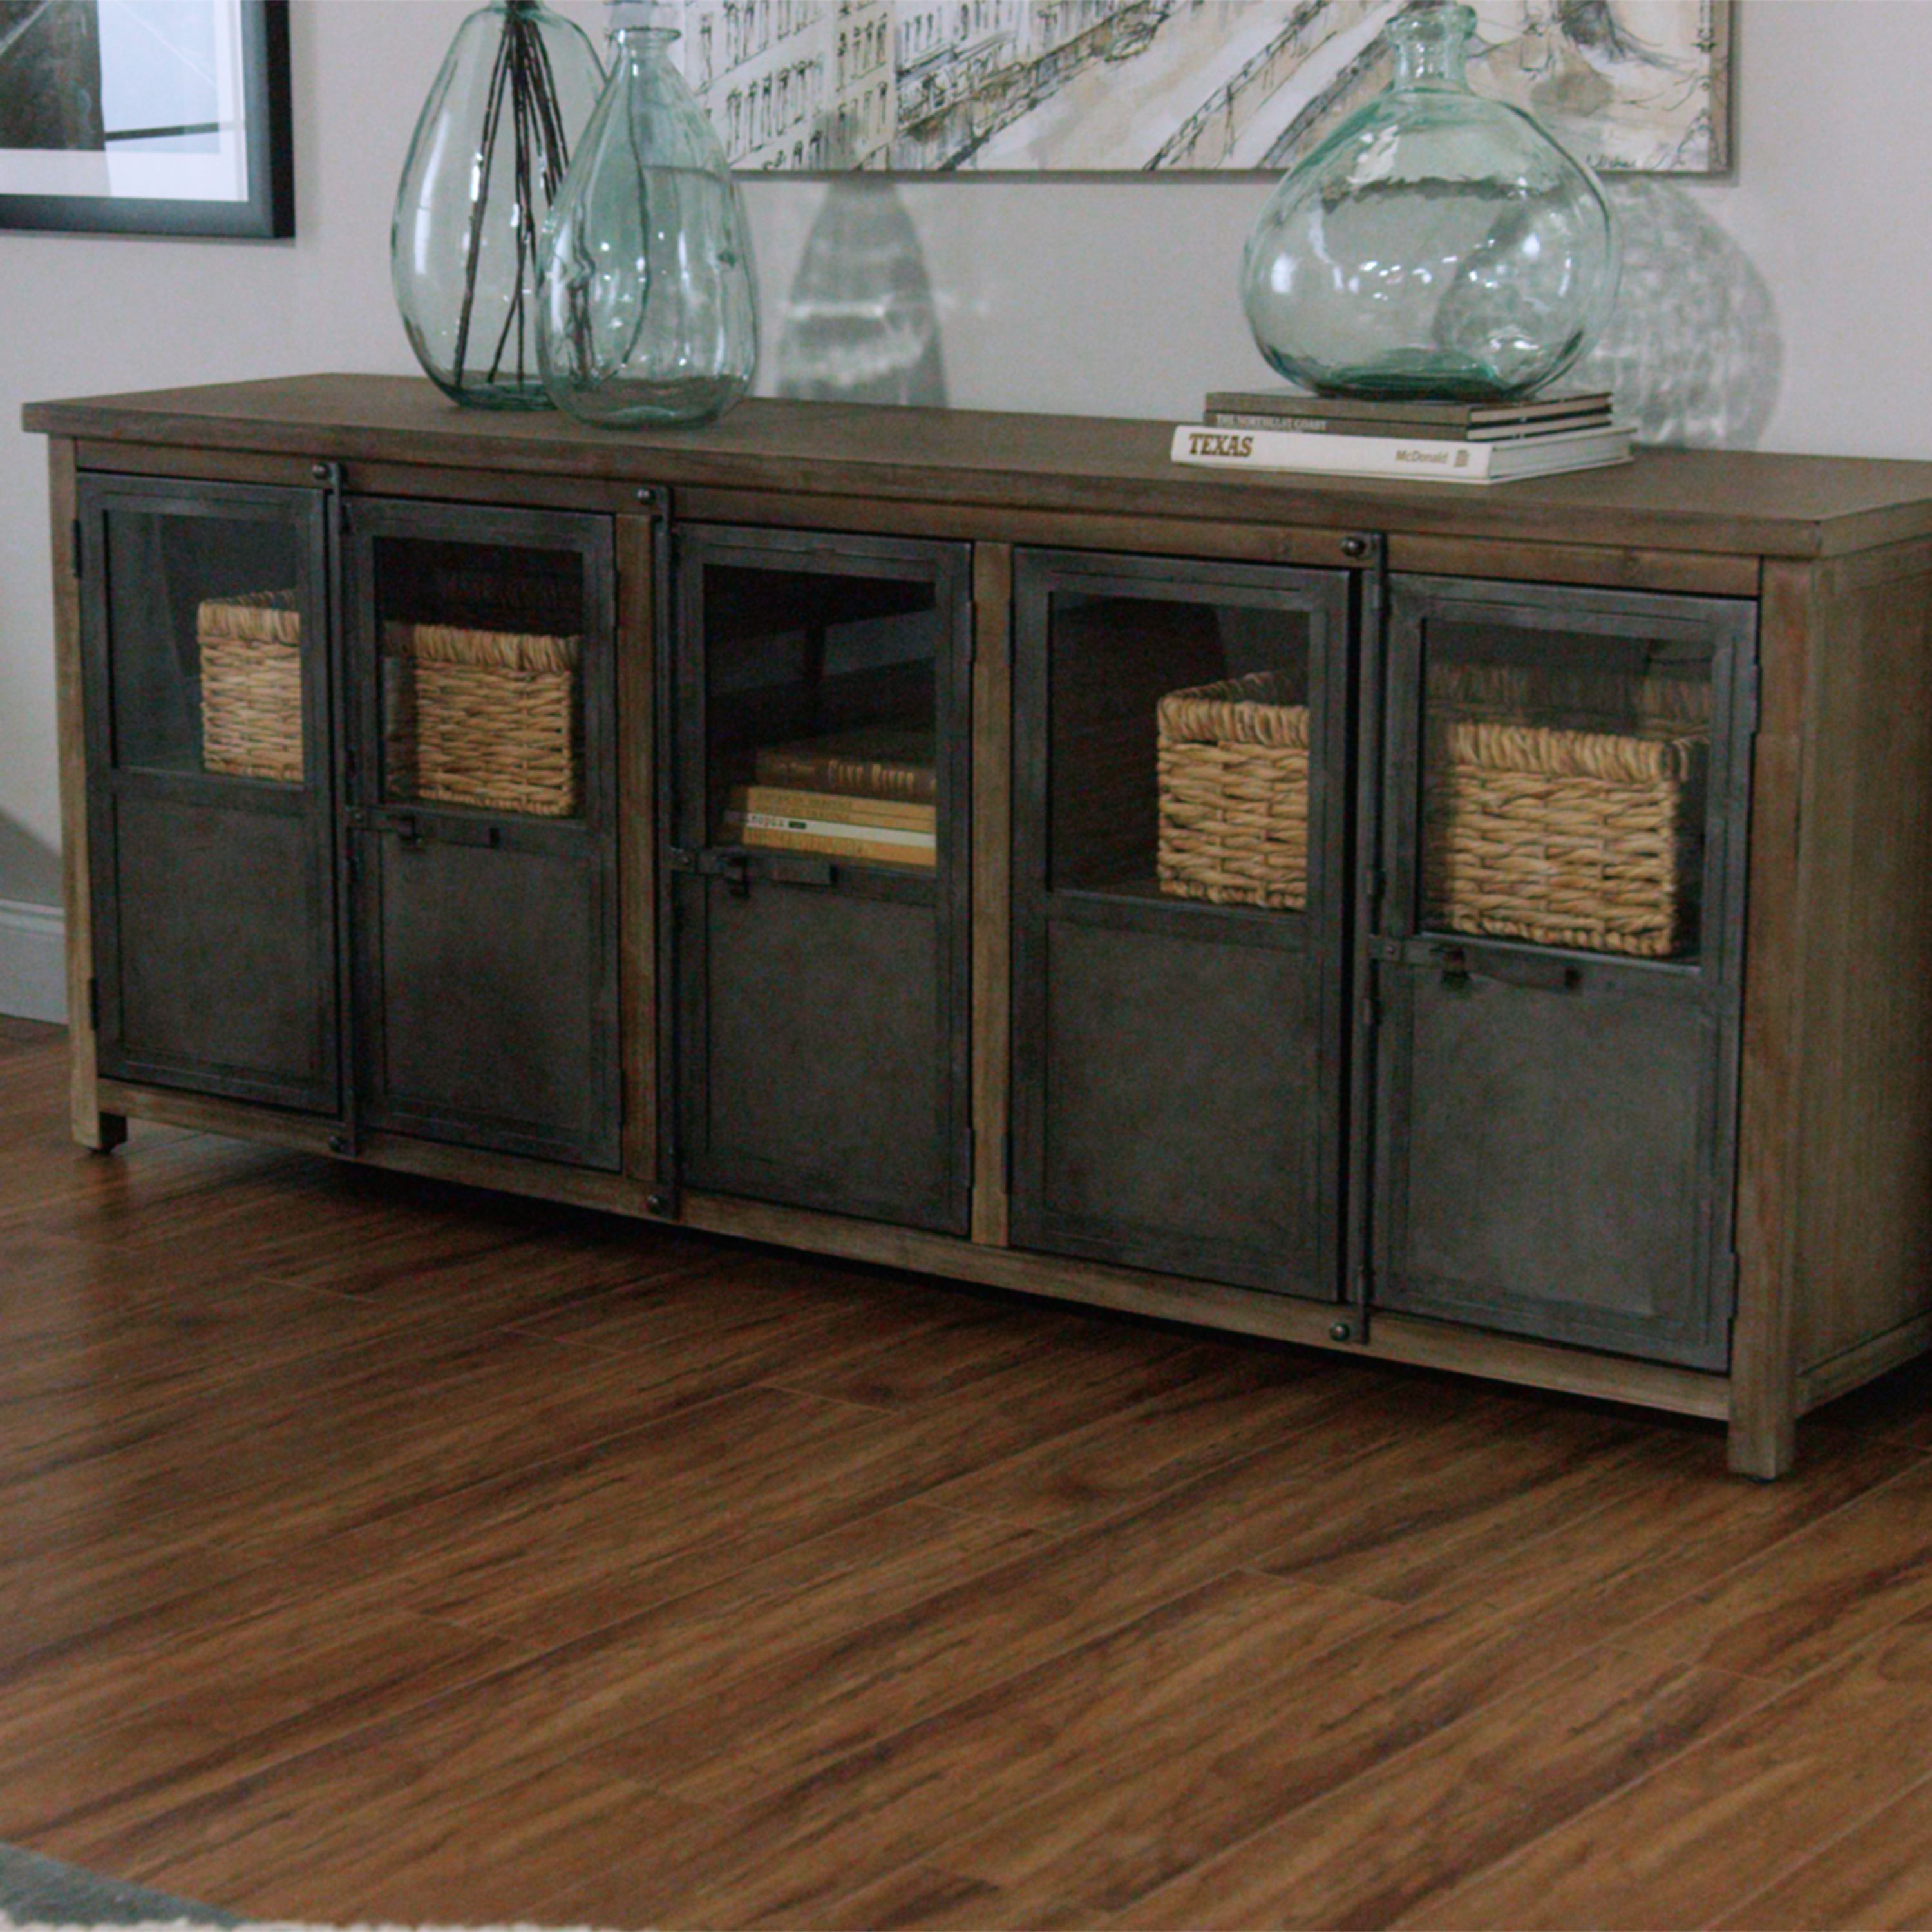 With Glass Paned Metal Doors, A Wood Frame And Latch Closures Inspired By  Cargo Trucks, Our Substantially Sized Mixed Material Cabinet Exudes An  Industrial ...